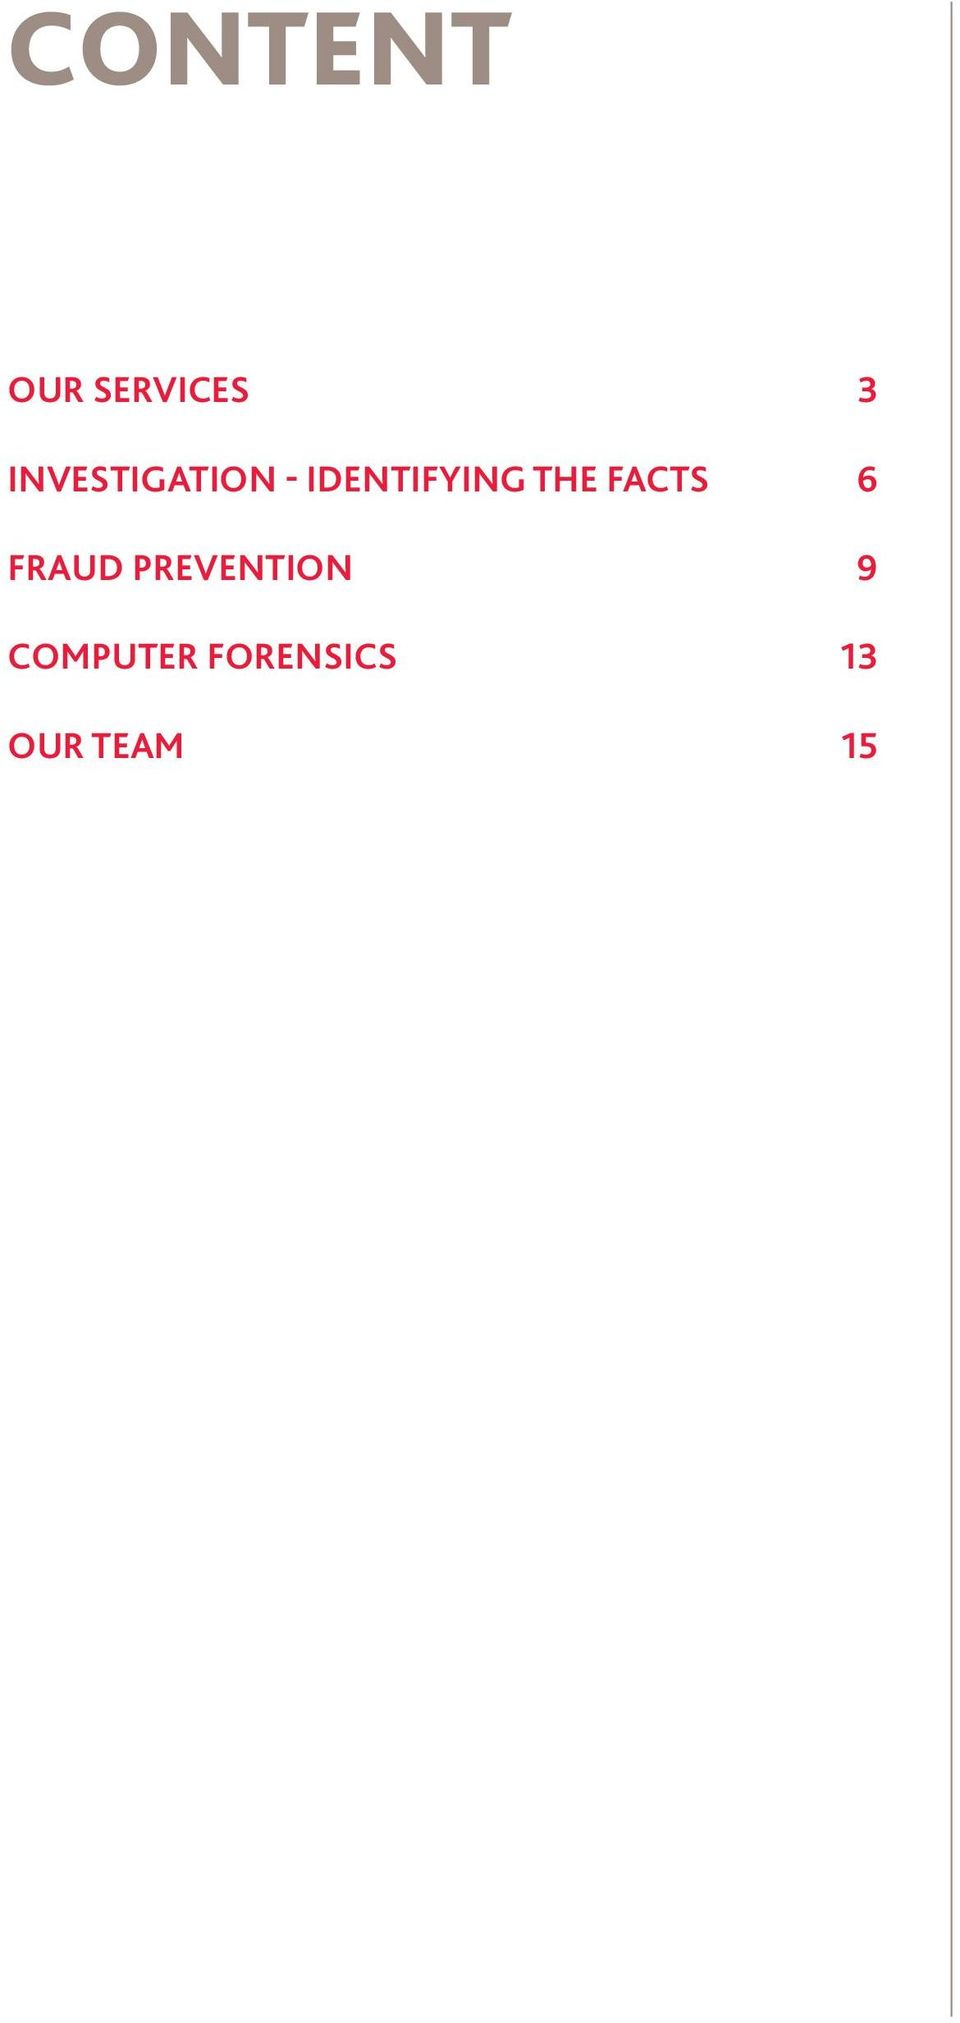 the facts 6 Fraud prevention